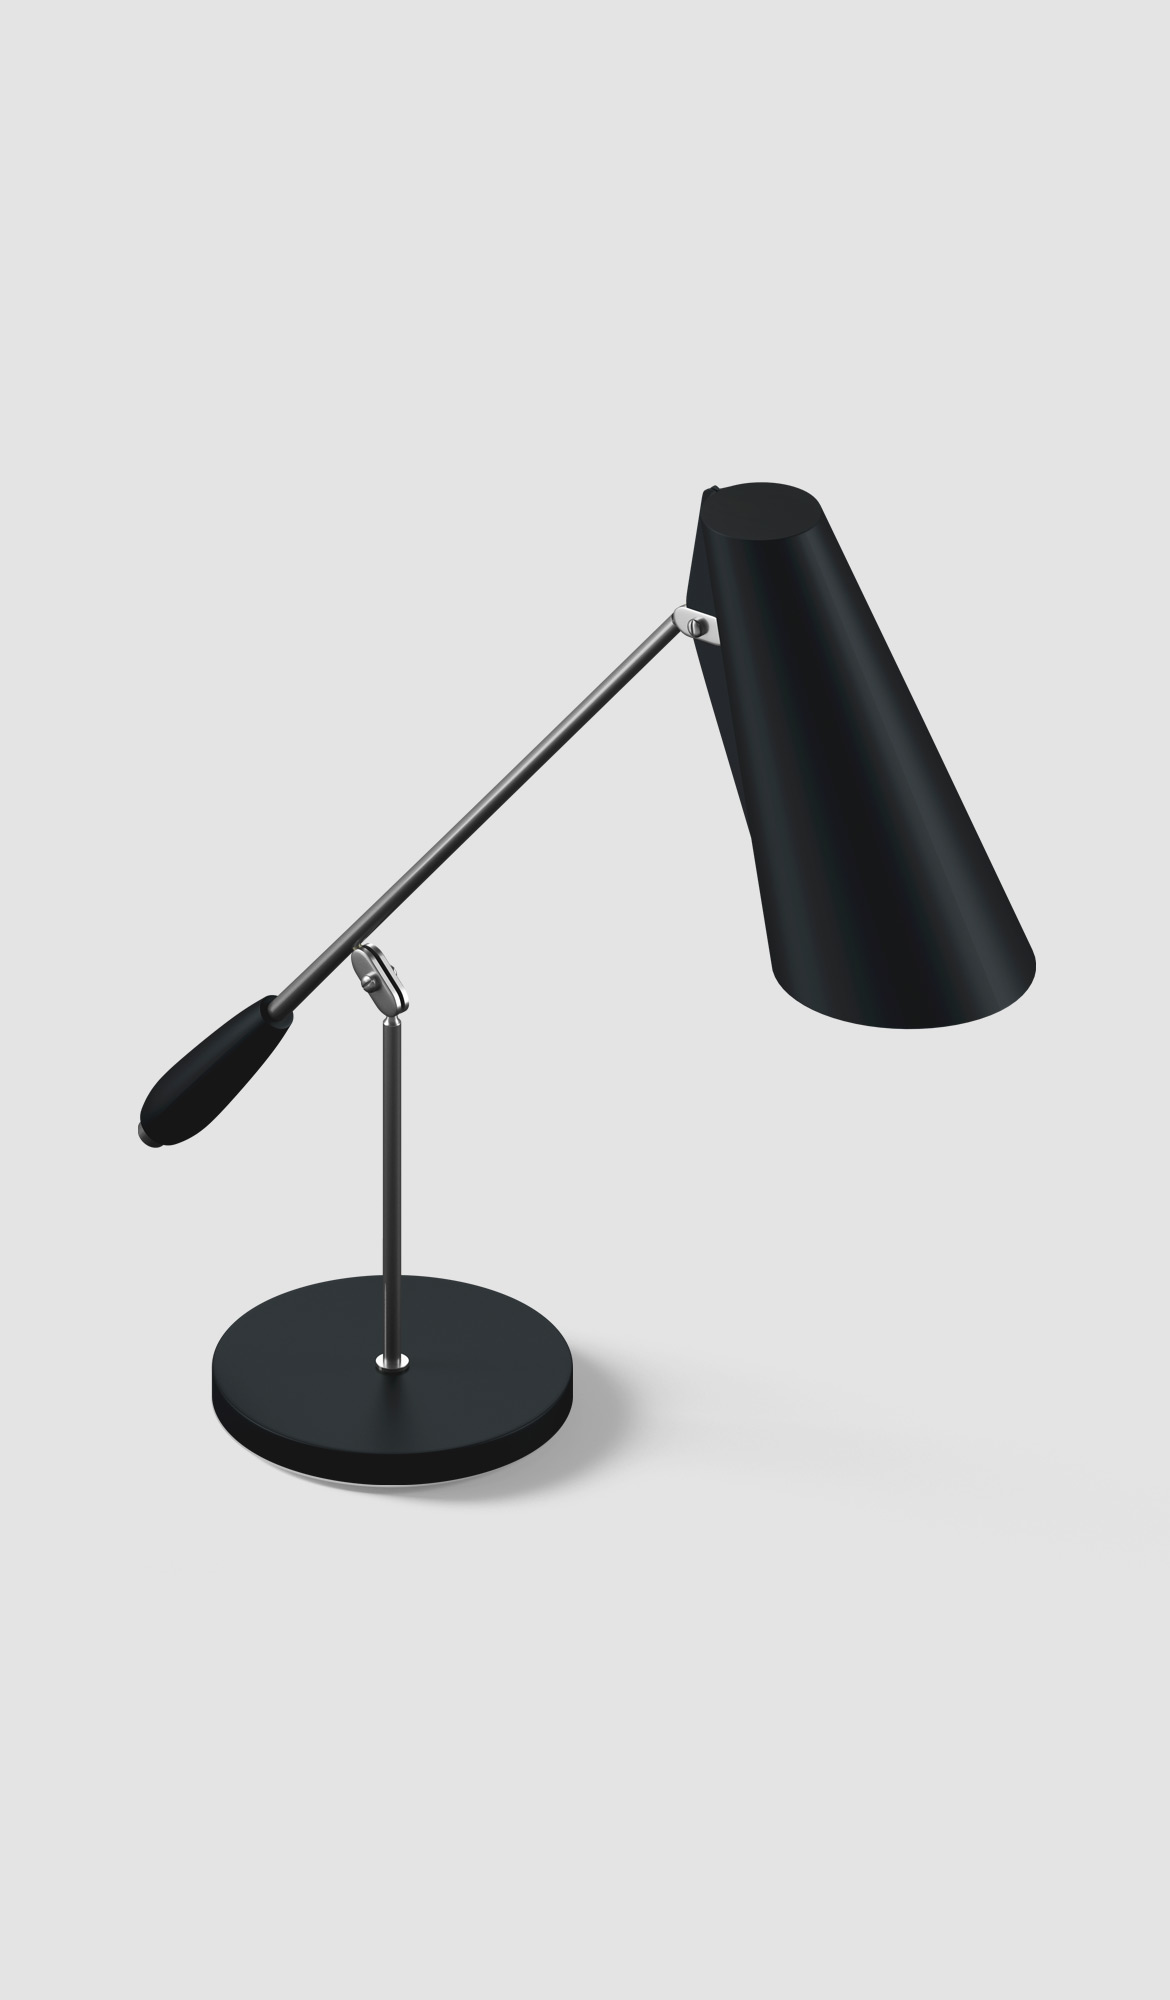 Table lamp with focus